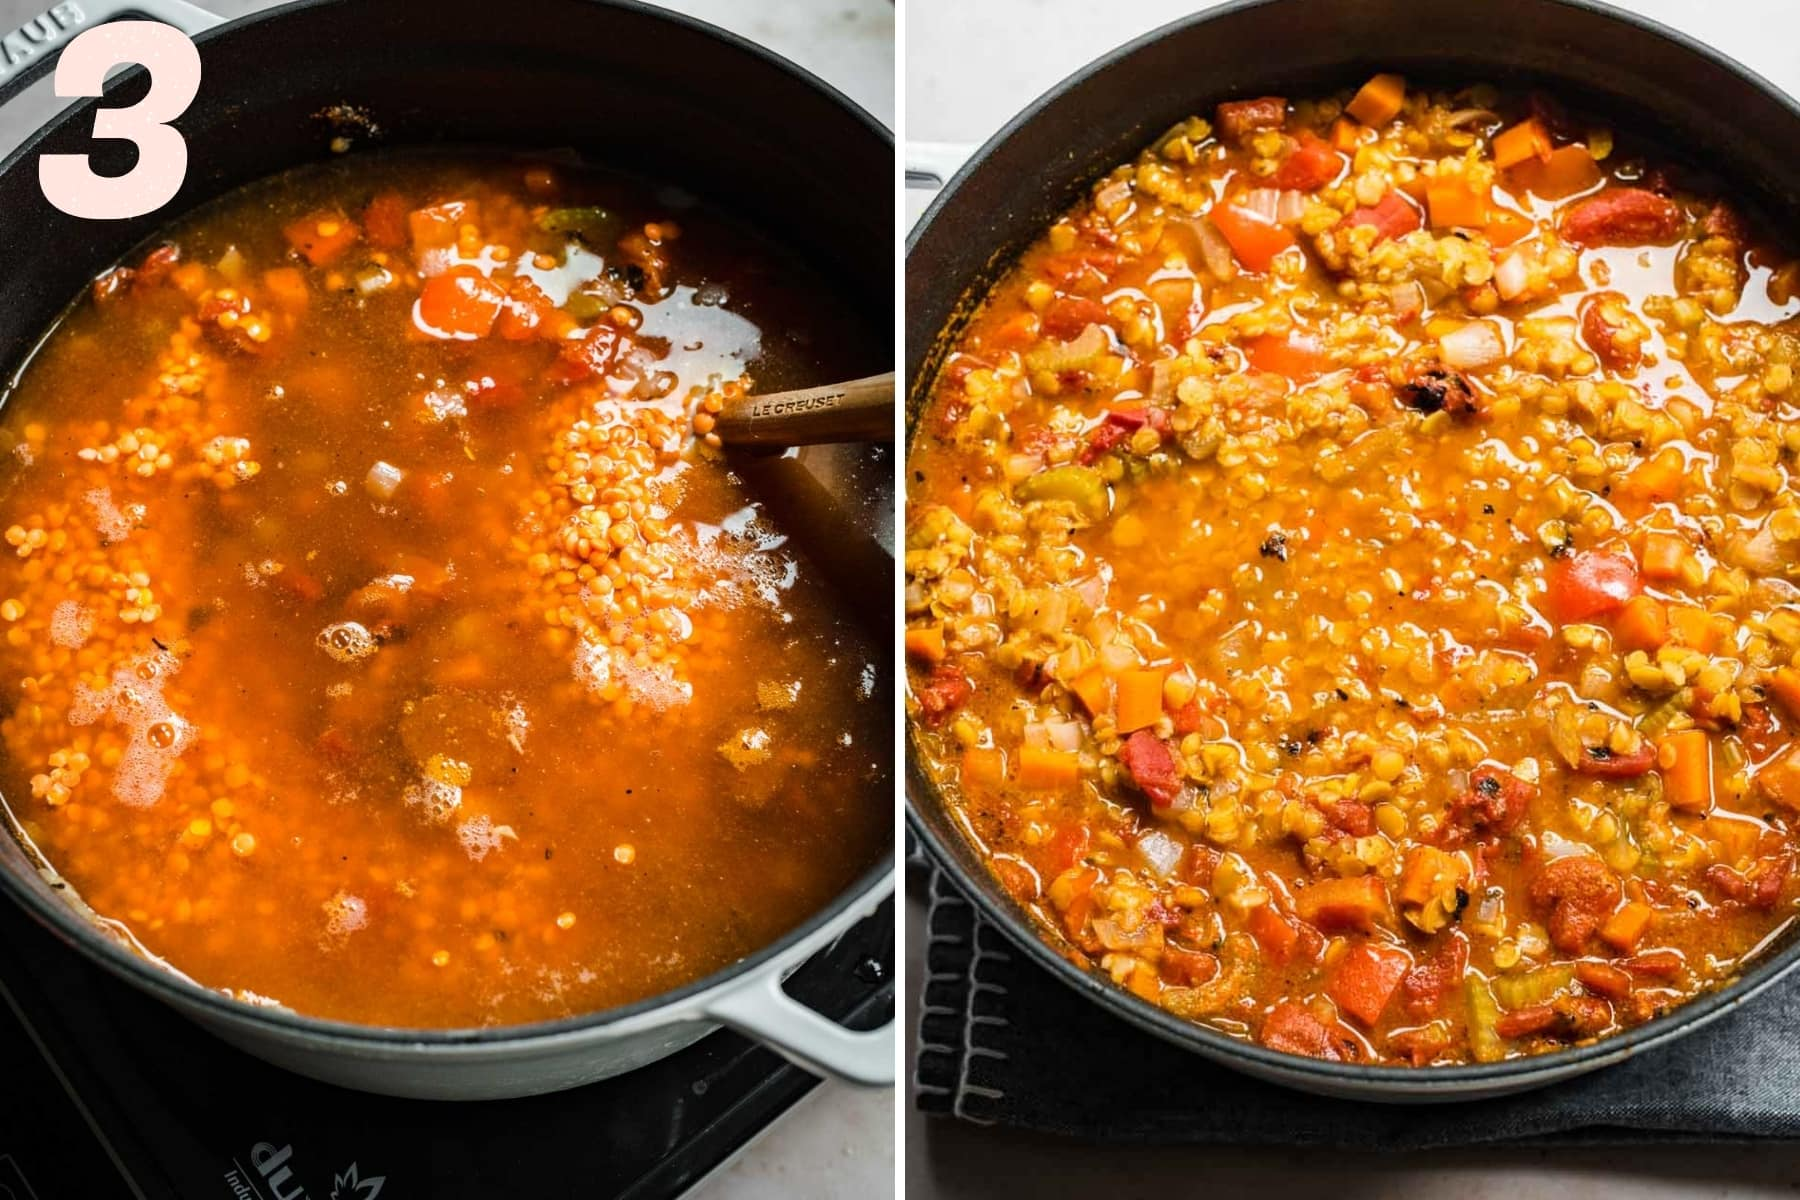 red lentil soup in large pot before and after cooking.